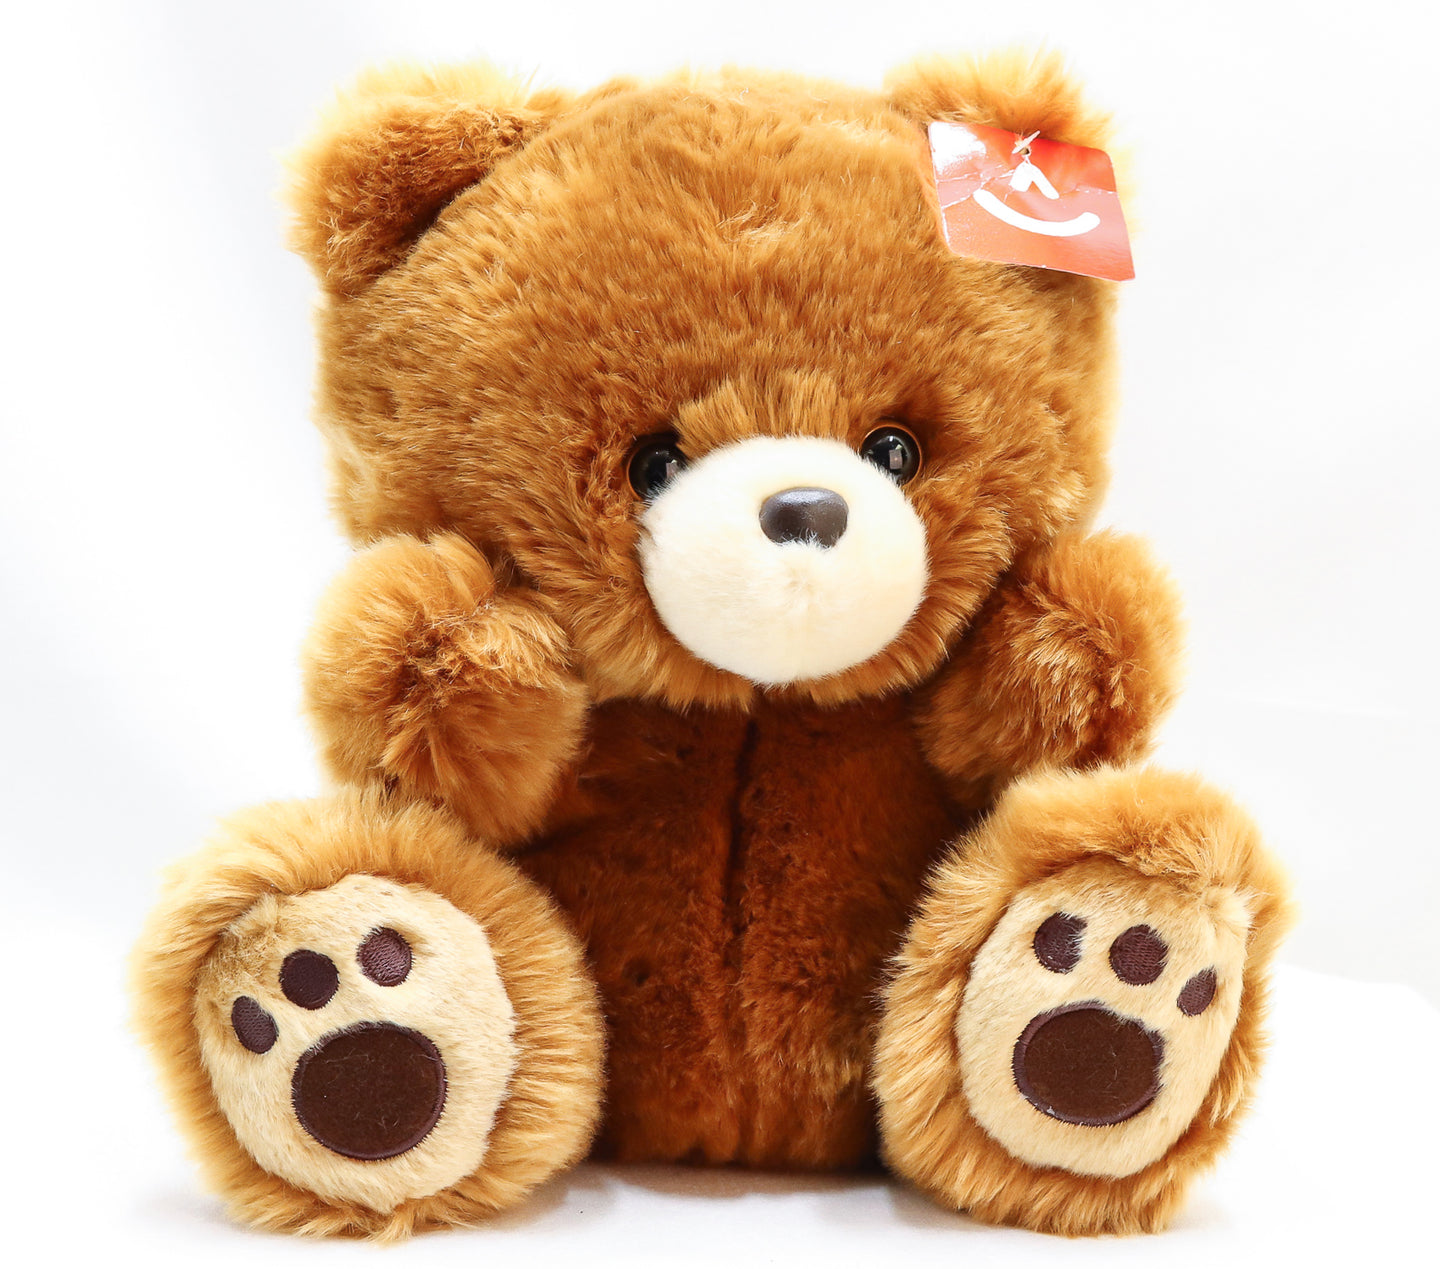 MR SNUGGLES GRIZZLY BEAR 9-INCH